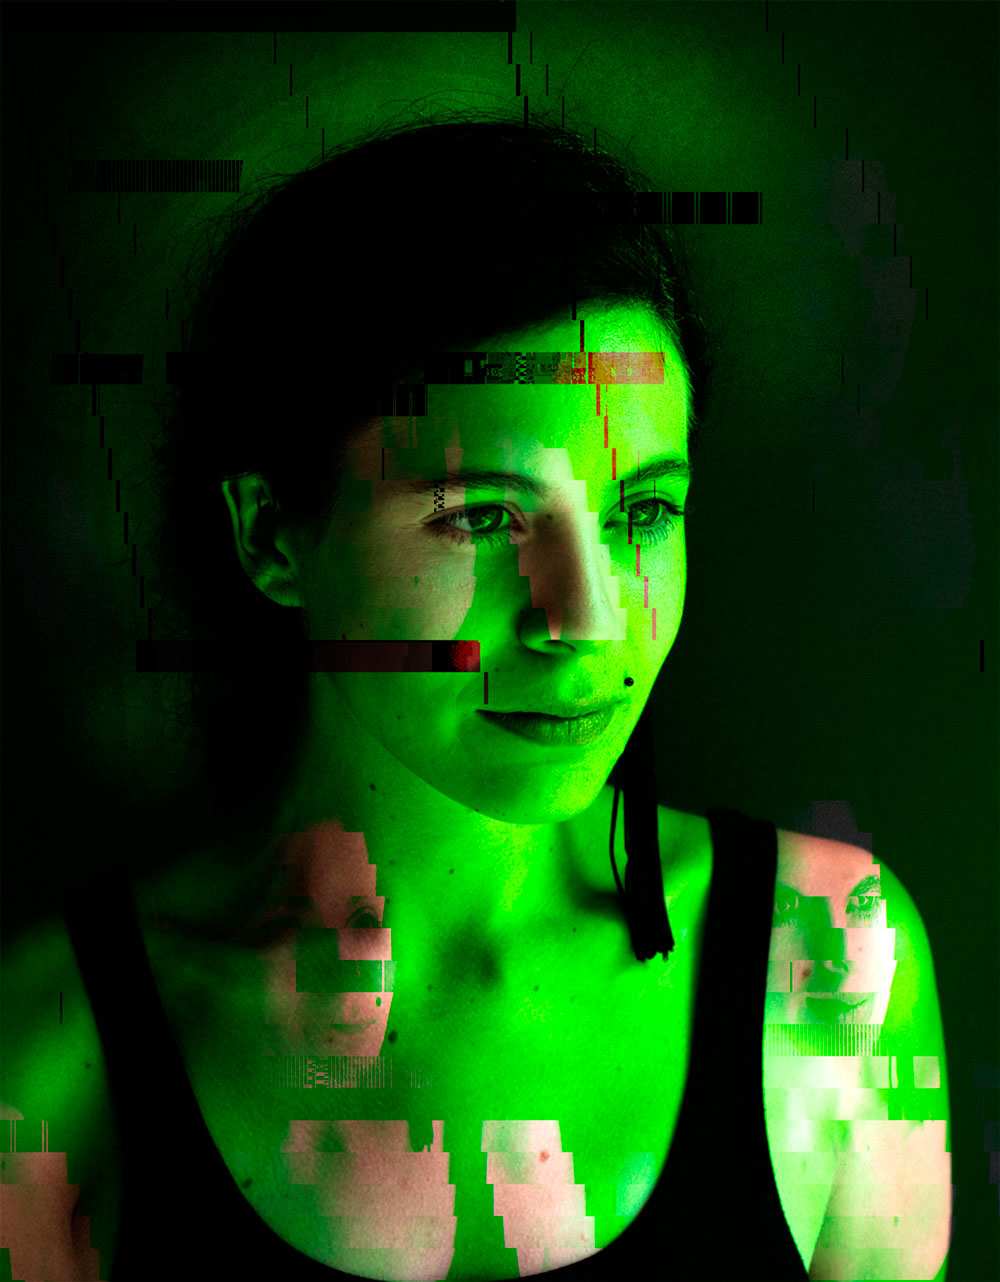 KELLY-GLITCH-VIDEO-11.jpg